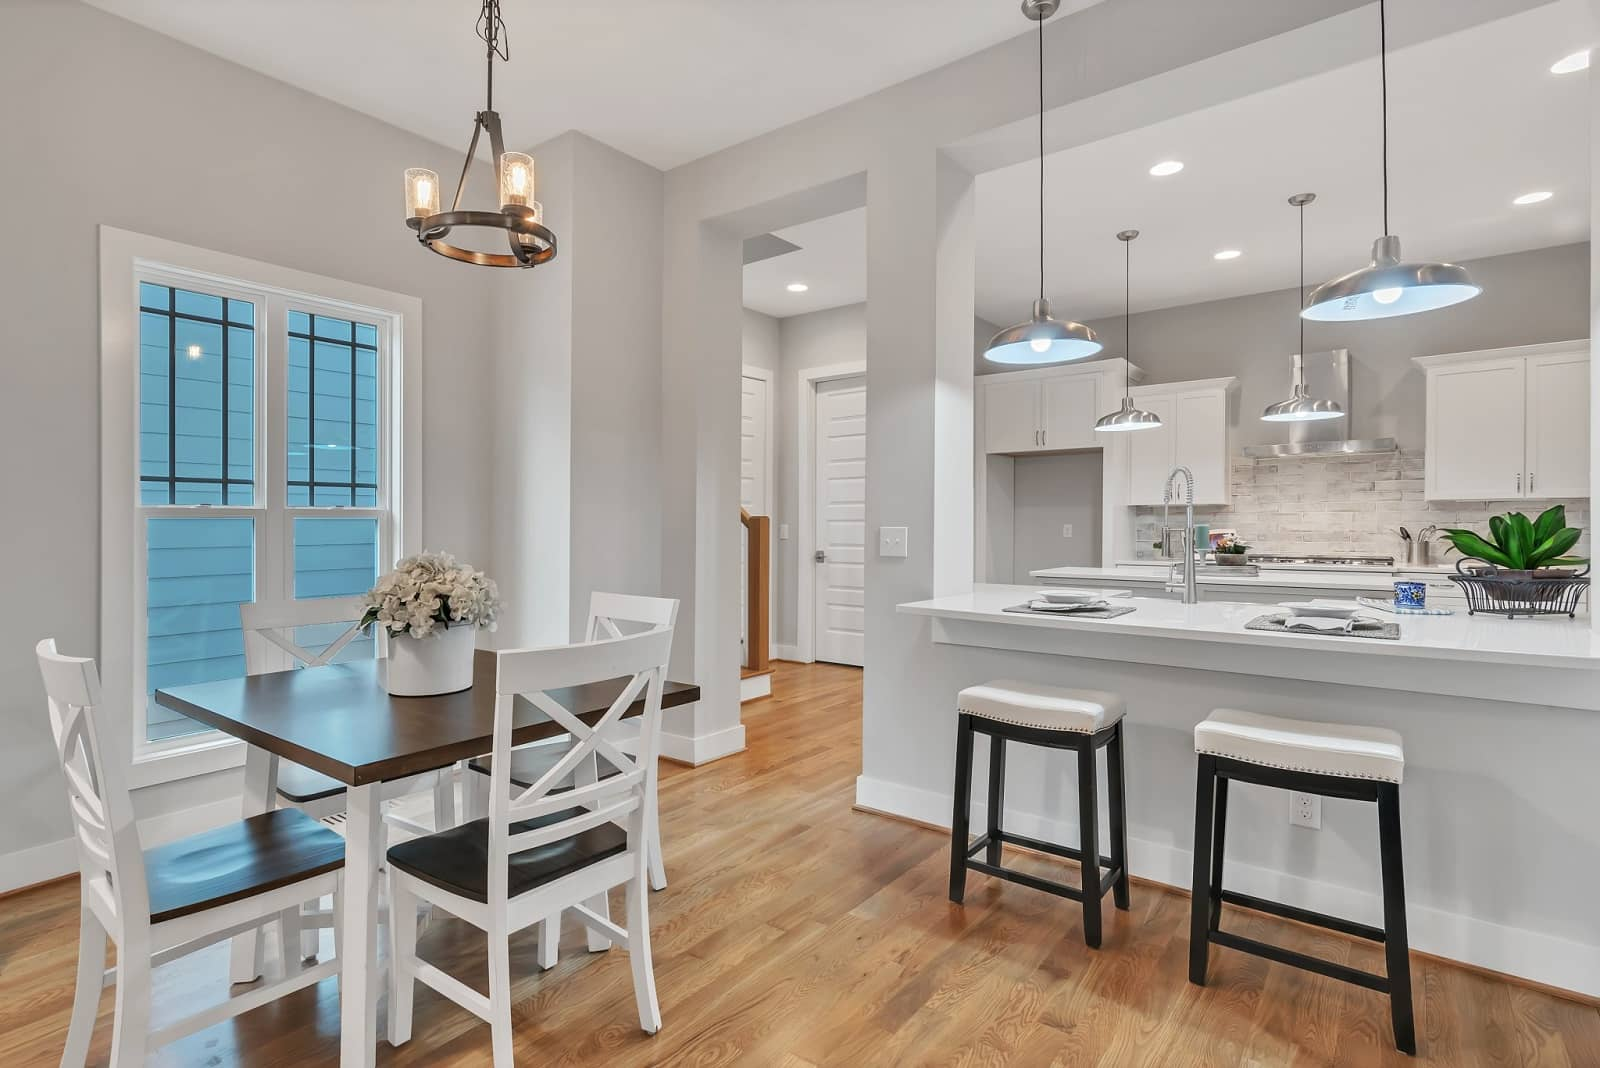 Real Estate Photography in Raleigh - NC - USA - Kitchen View